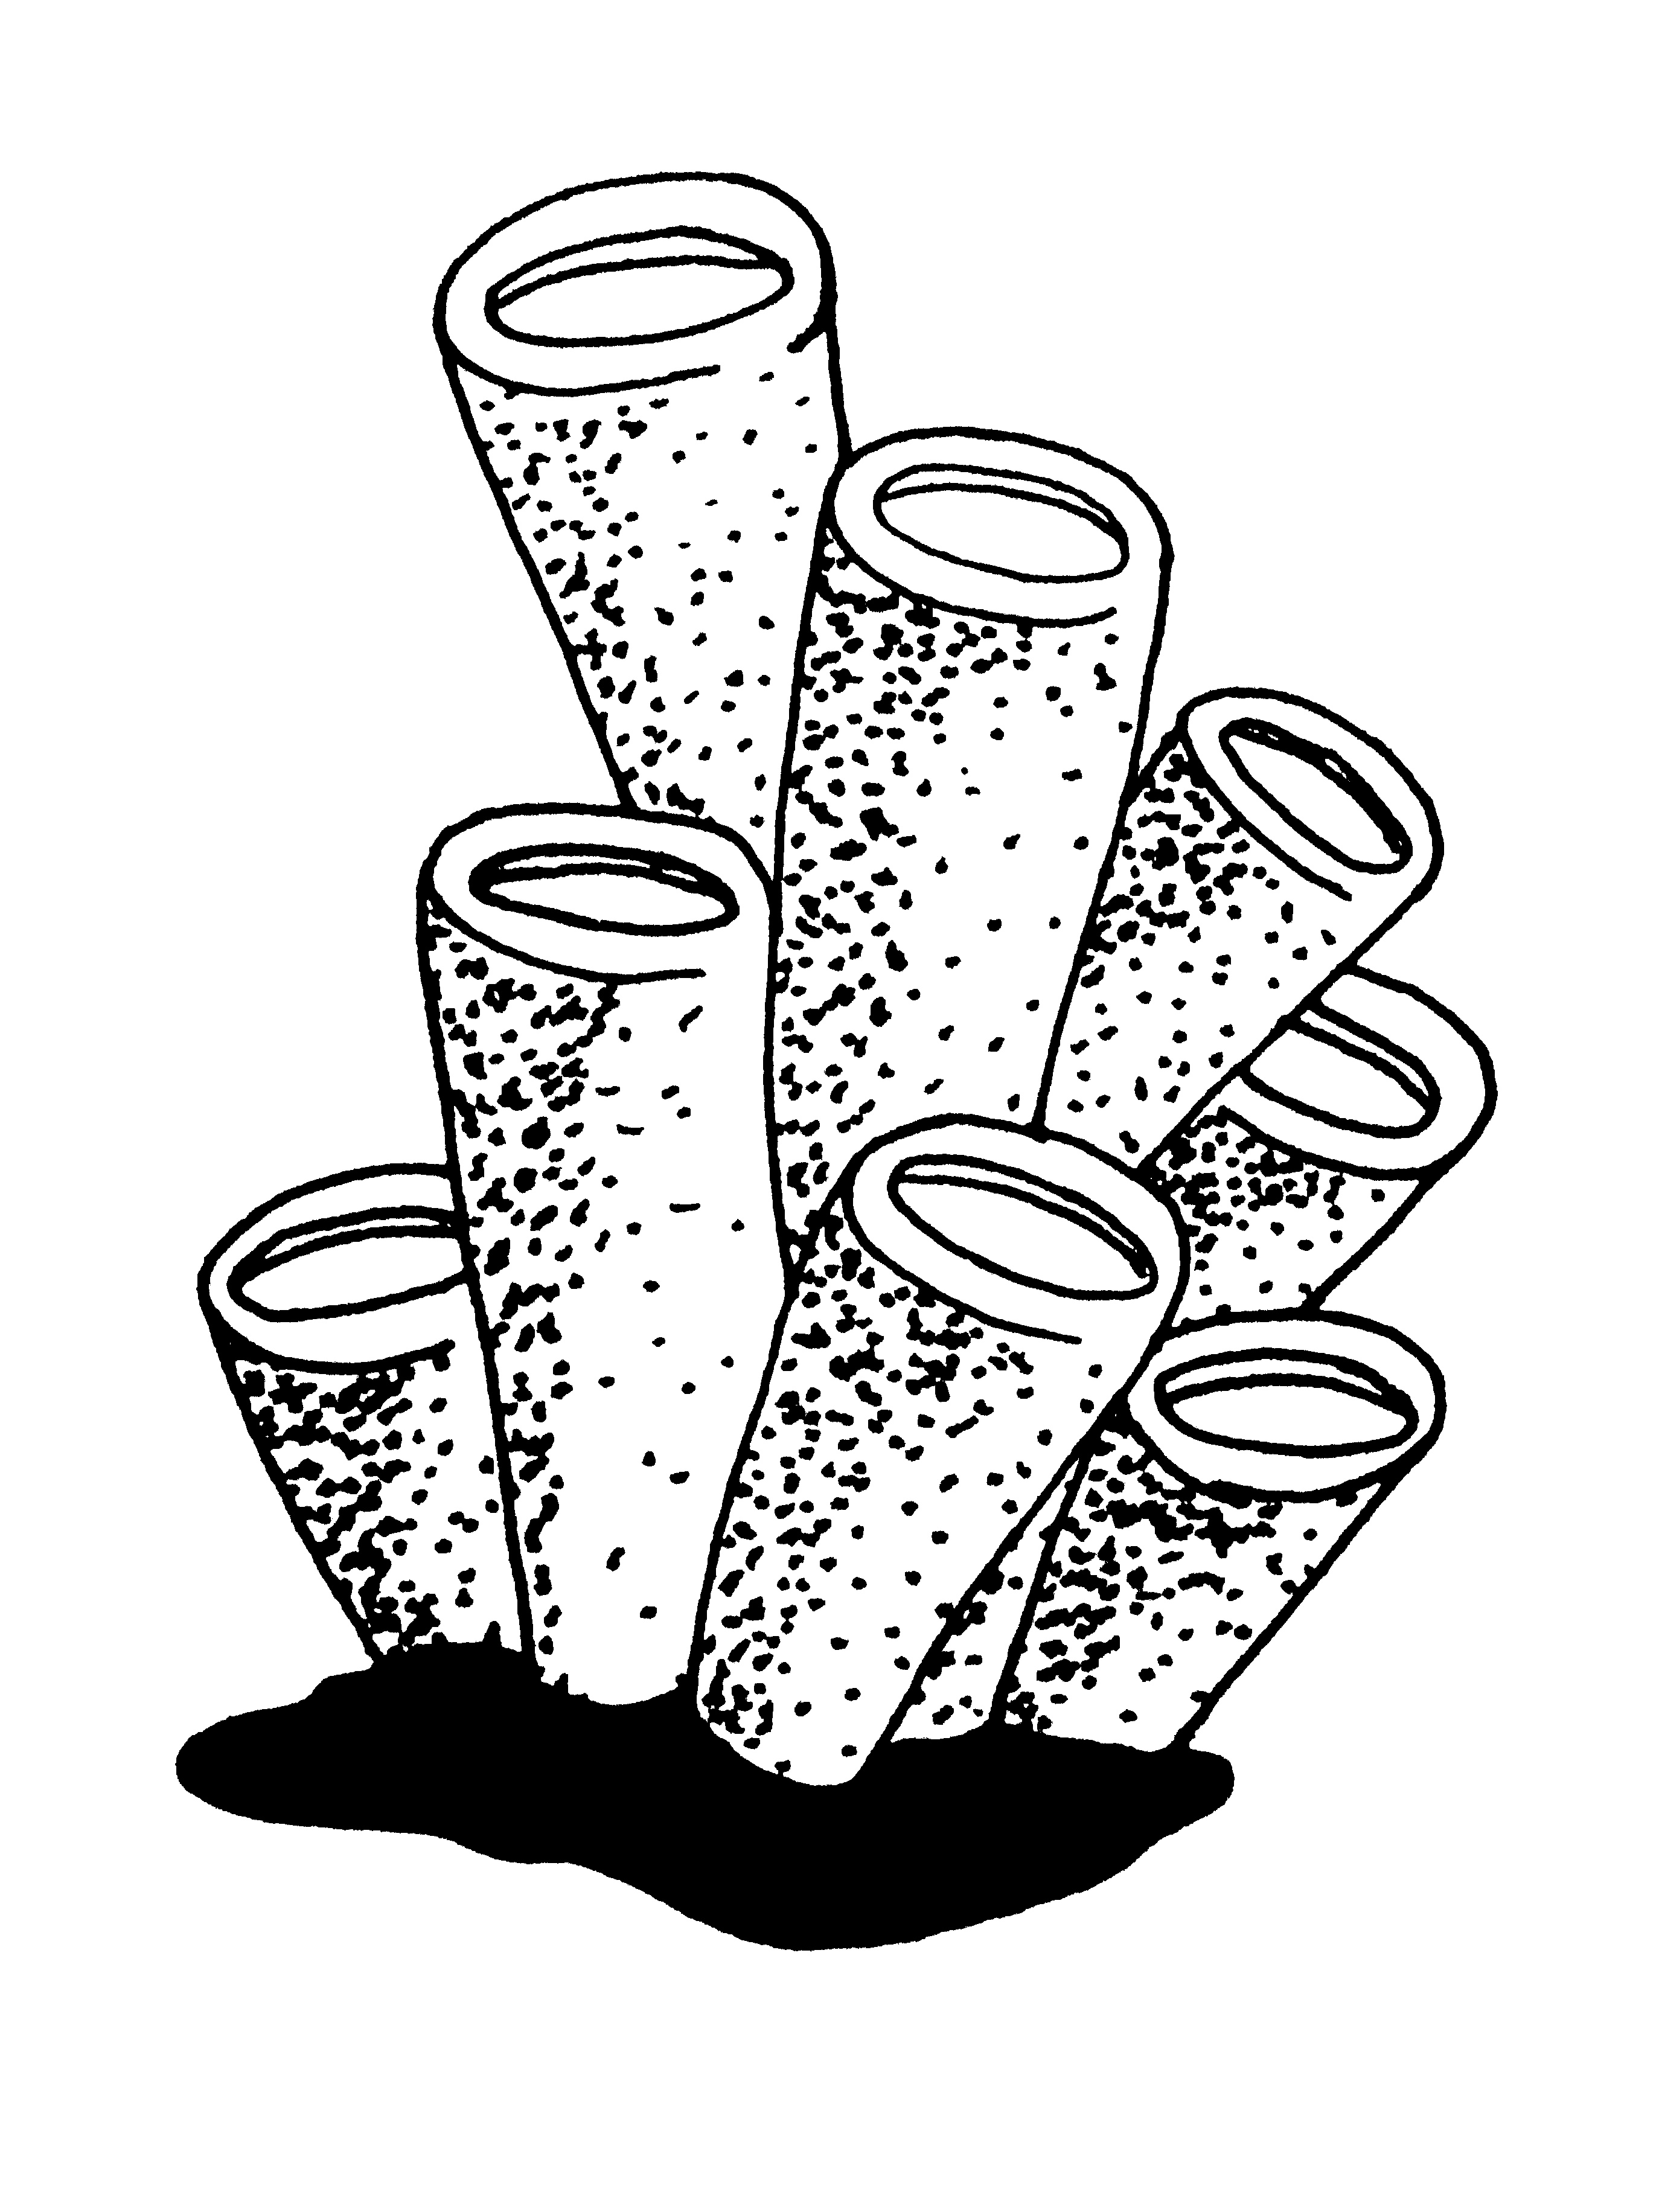 28 Mason Jar Coloring Page Selection | FREE COLORING PAGES - Part 2